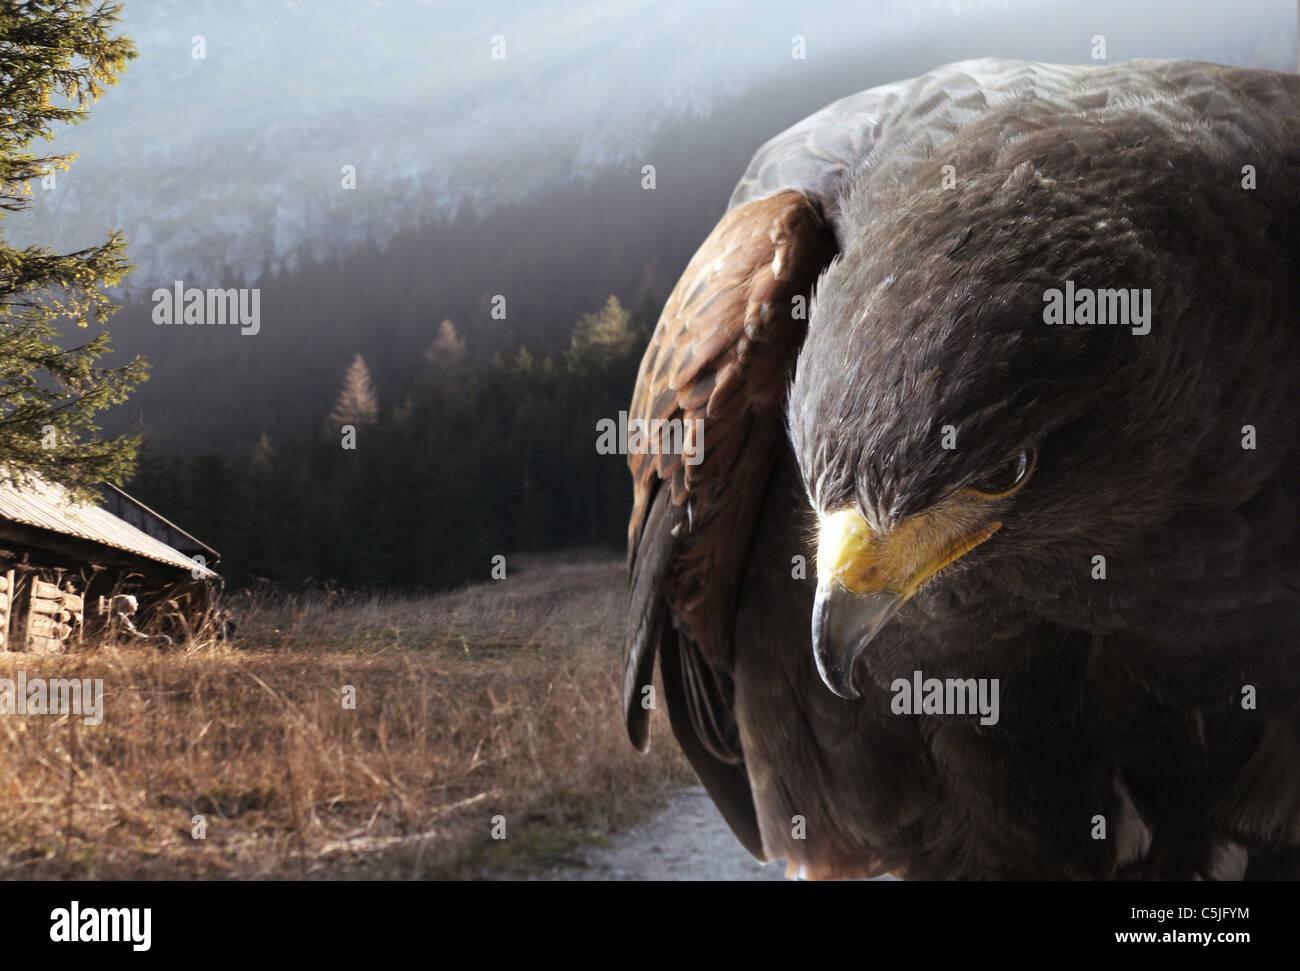 Eagle against the mountains - Stock Image